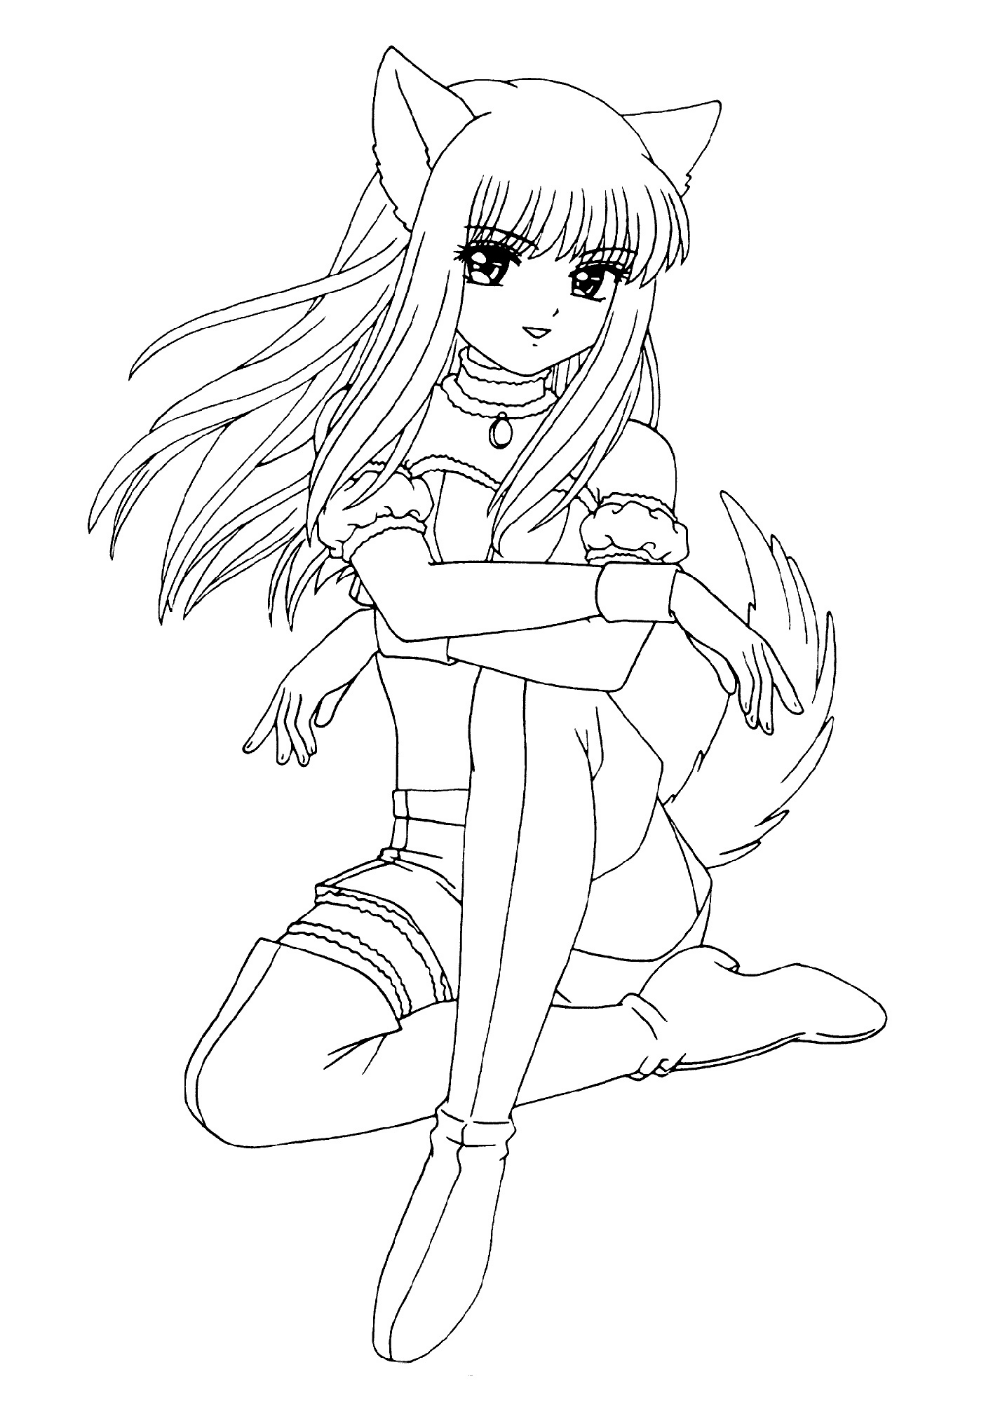 anime colour in manga coloring pages to download and print for free colour anime in